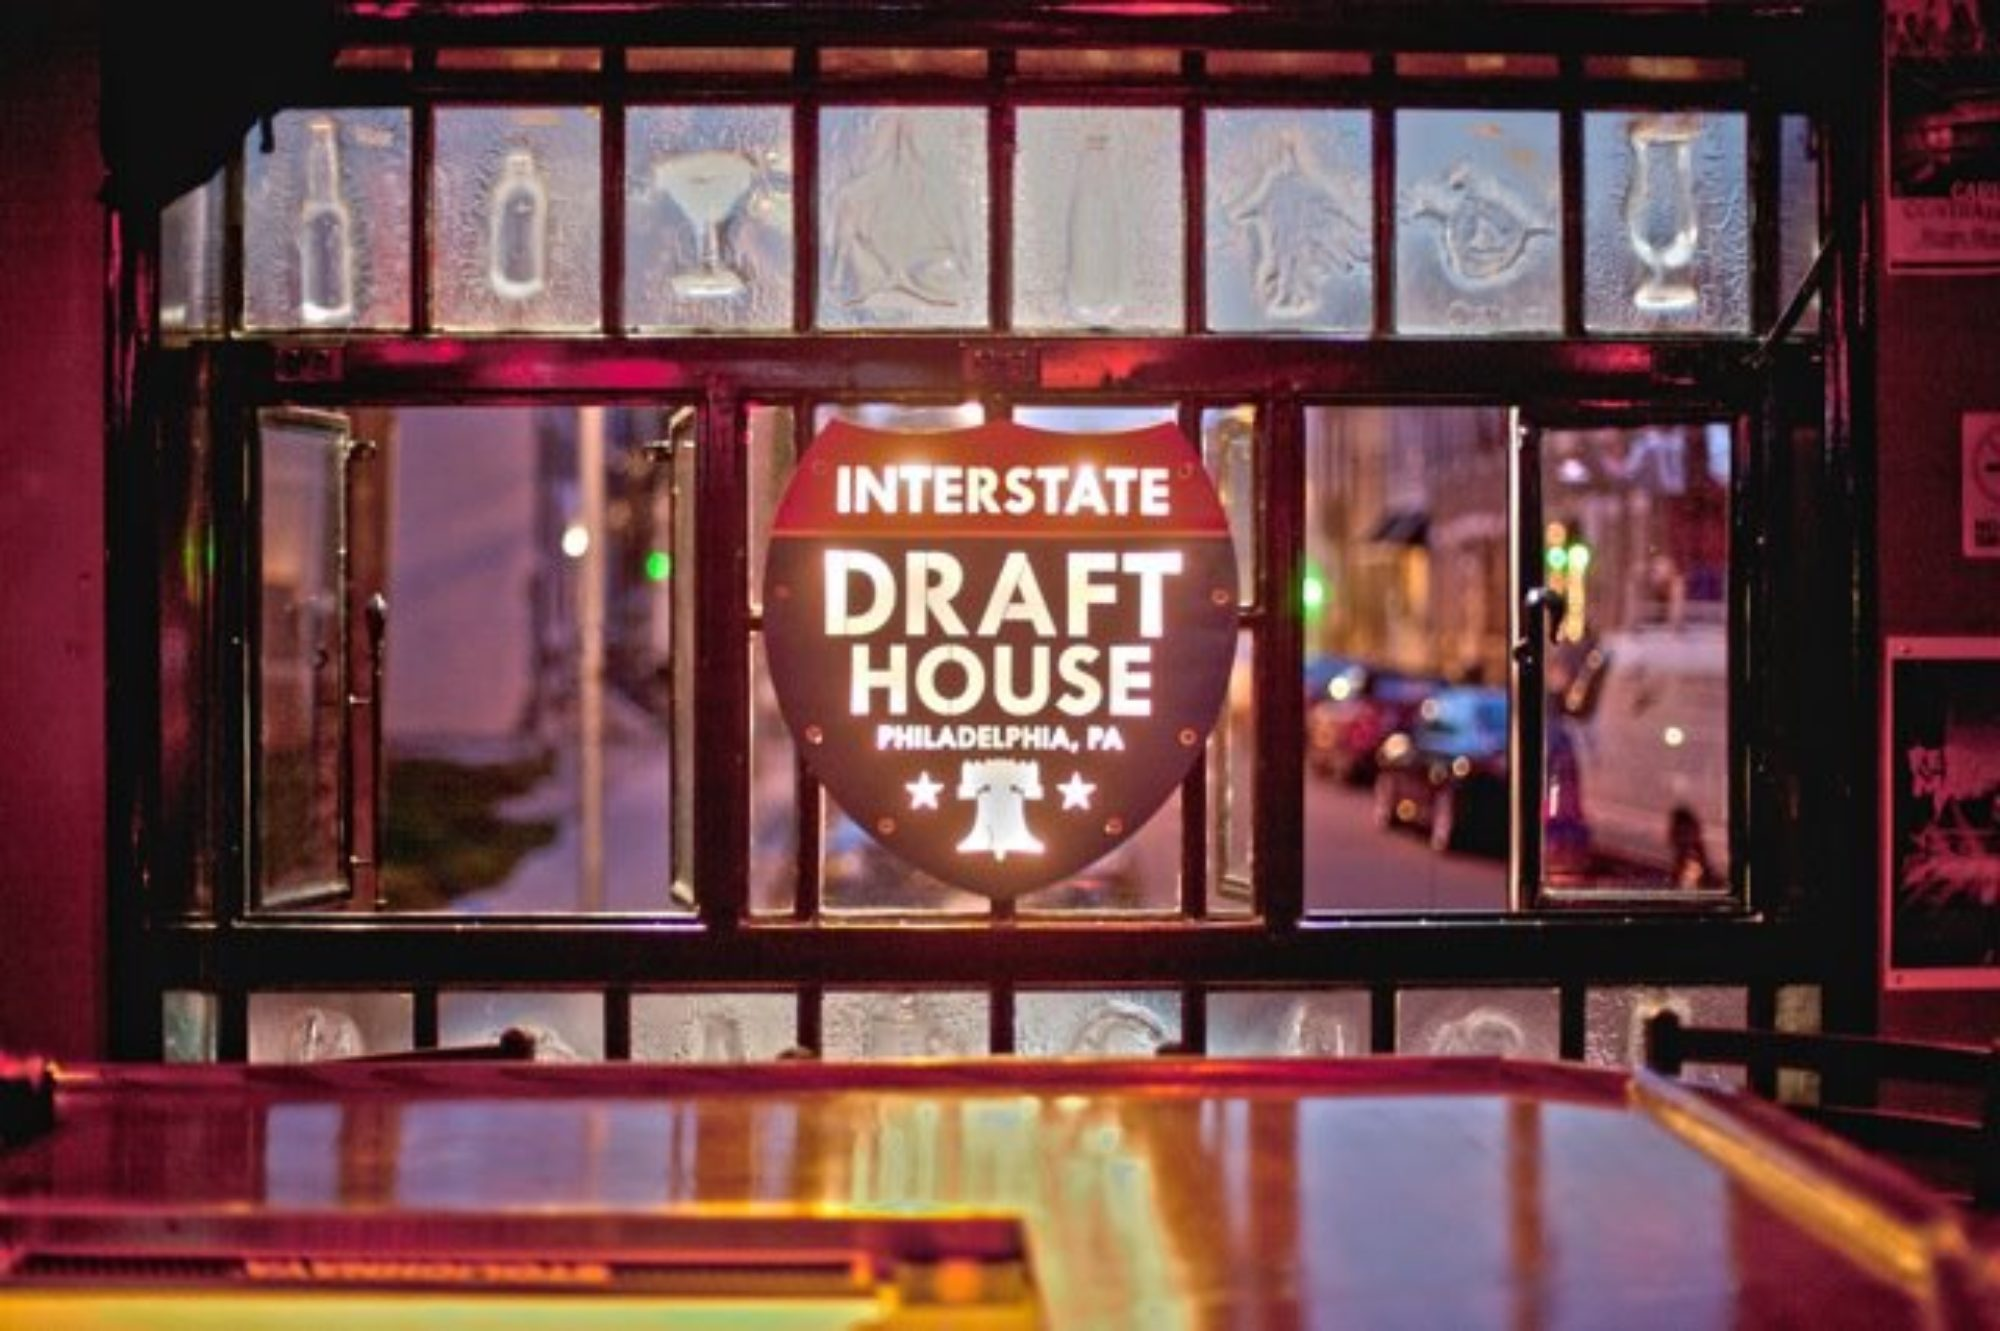 Interstate Drafthouse